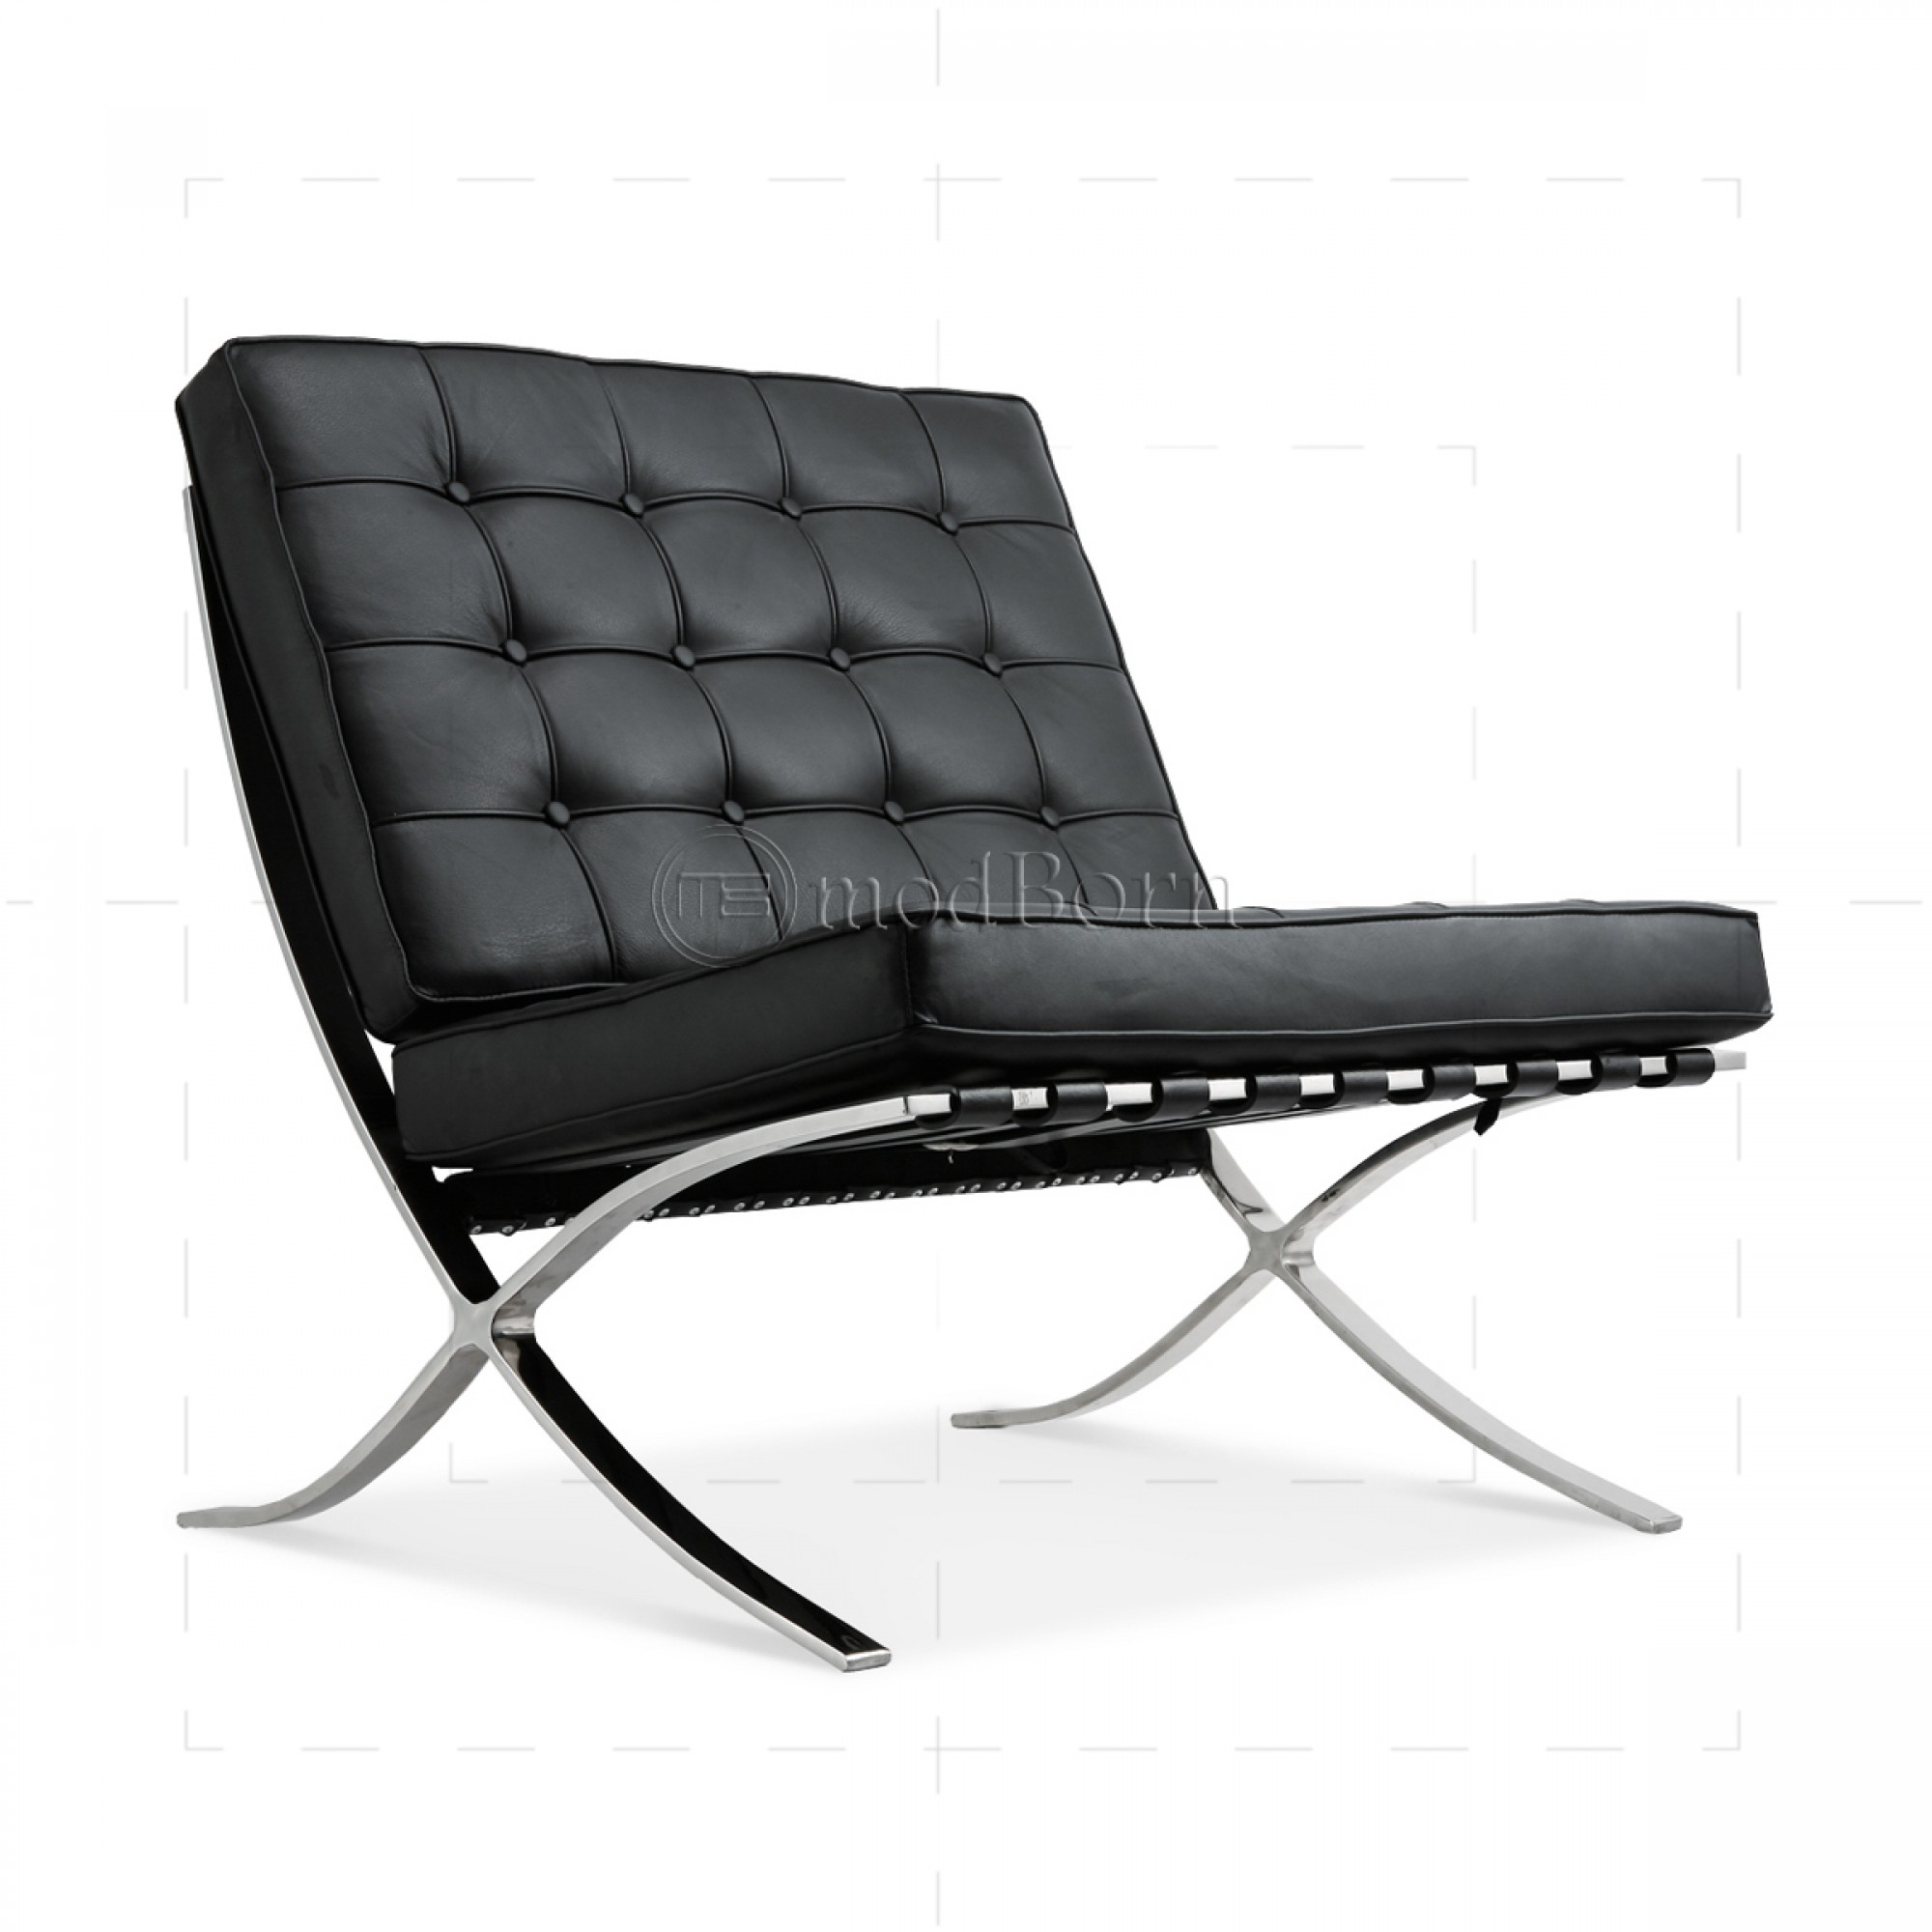 Ludwig Mies Ven Der Rohe Barcelona Style Chair Black Leather on living room furniture chaise